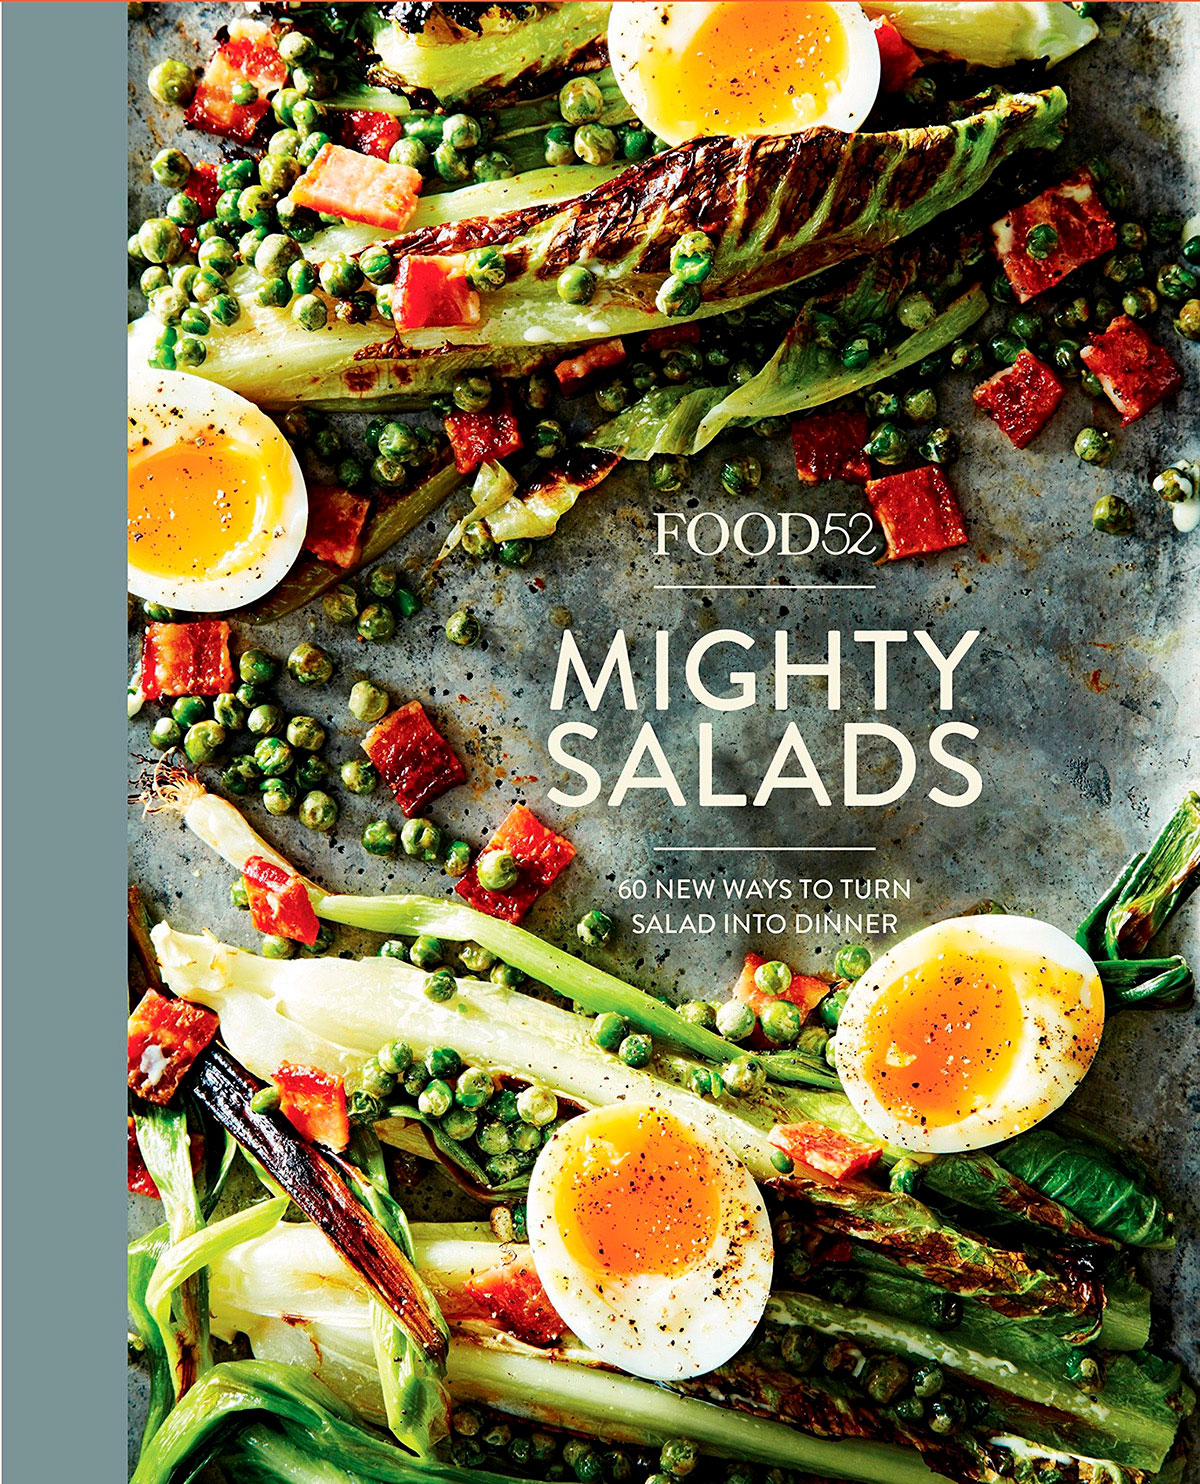 Food52: Mighty Salads: 60 New Ways to Turn Salad Into Dinner